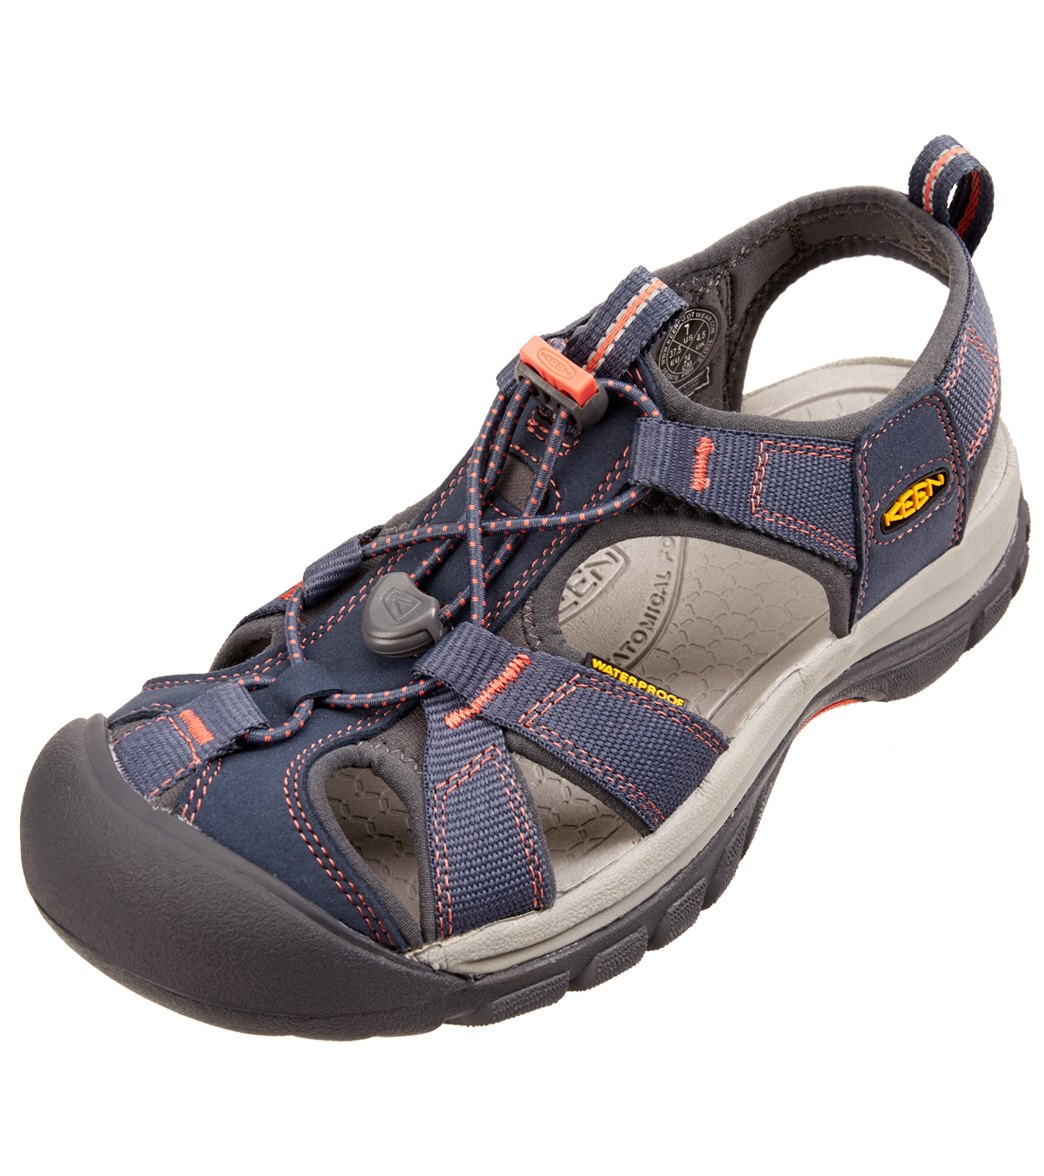 Keen Shoes International Shipping